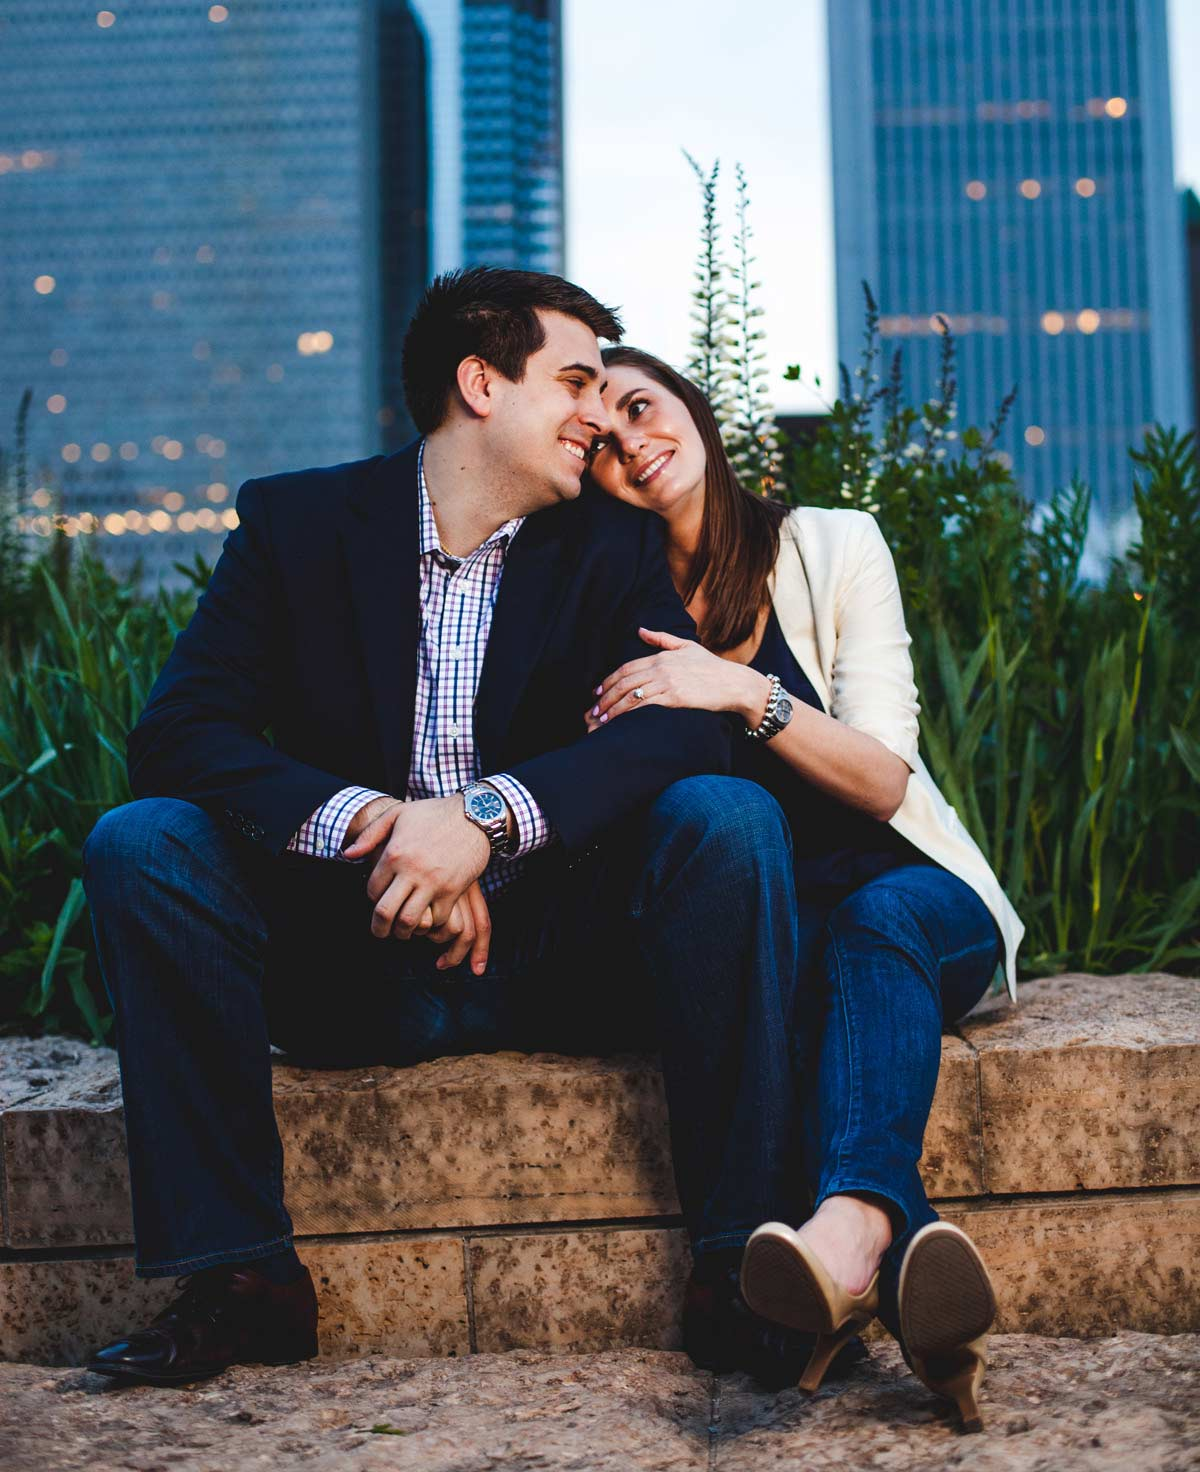 chicago engagement photography session photography matt holly night (20)